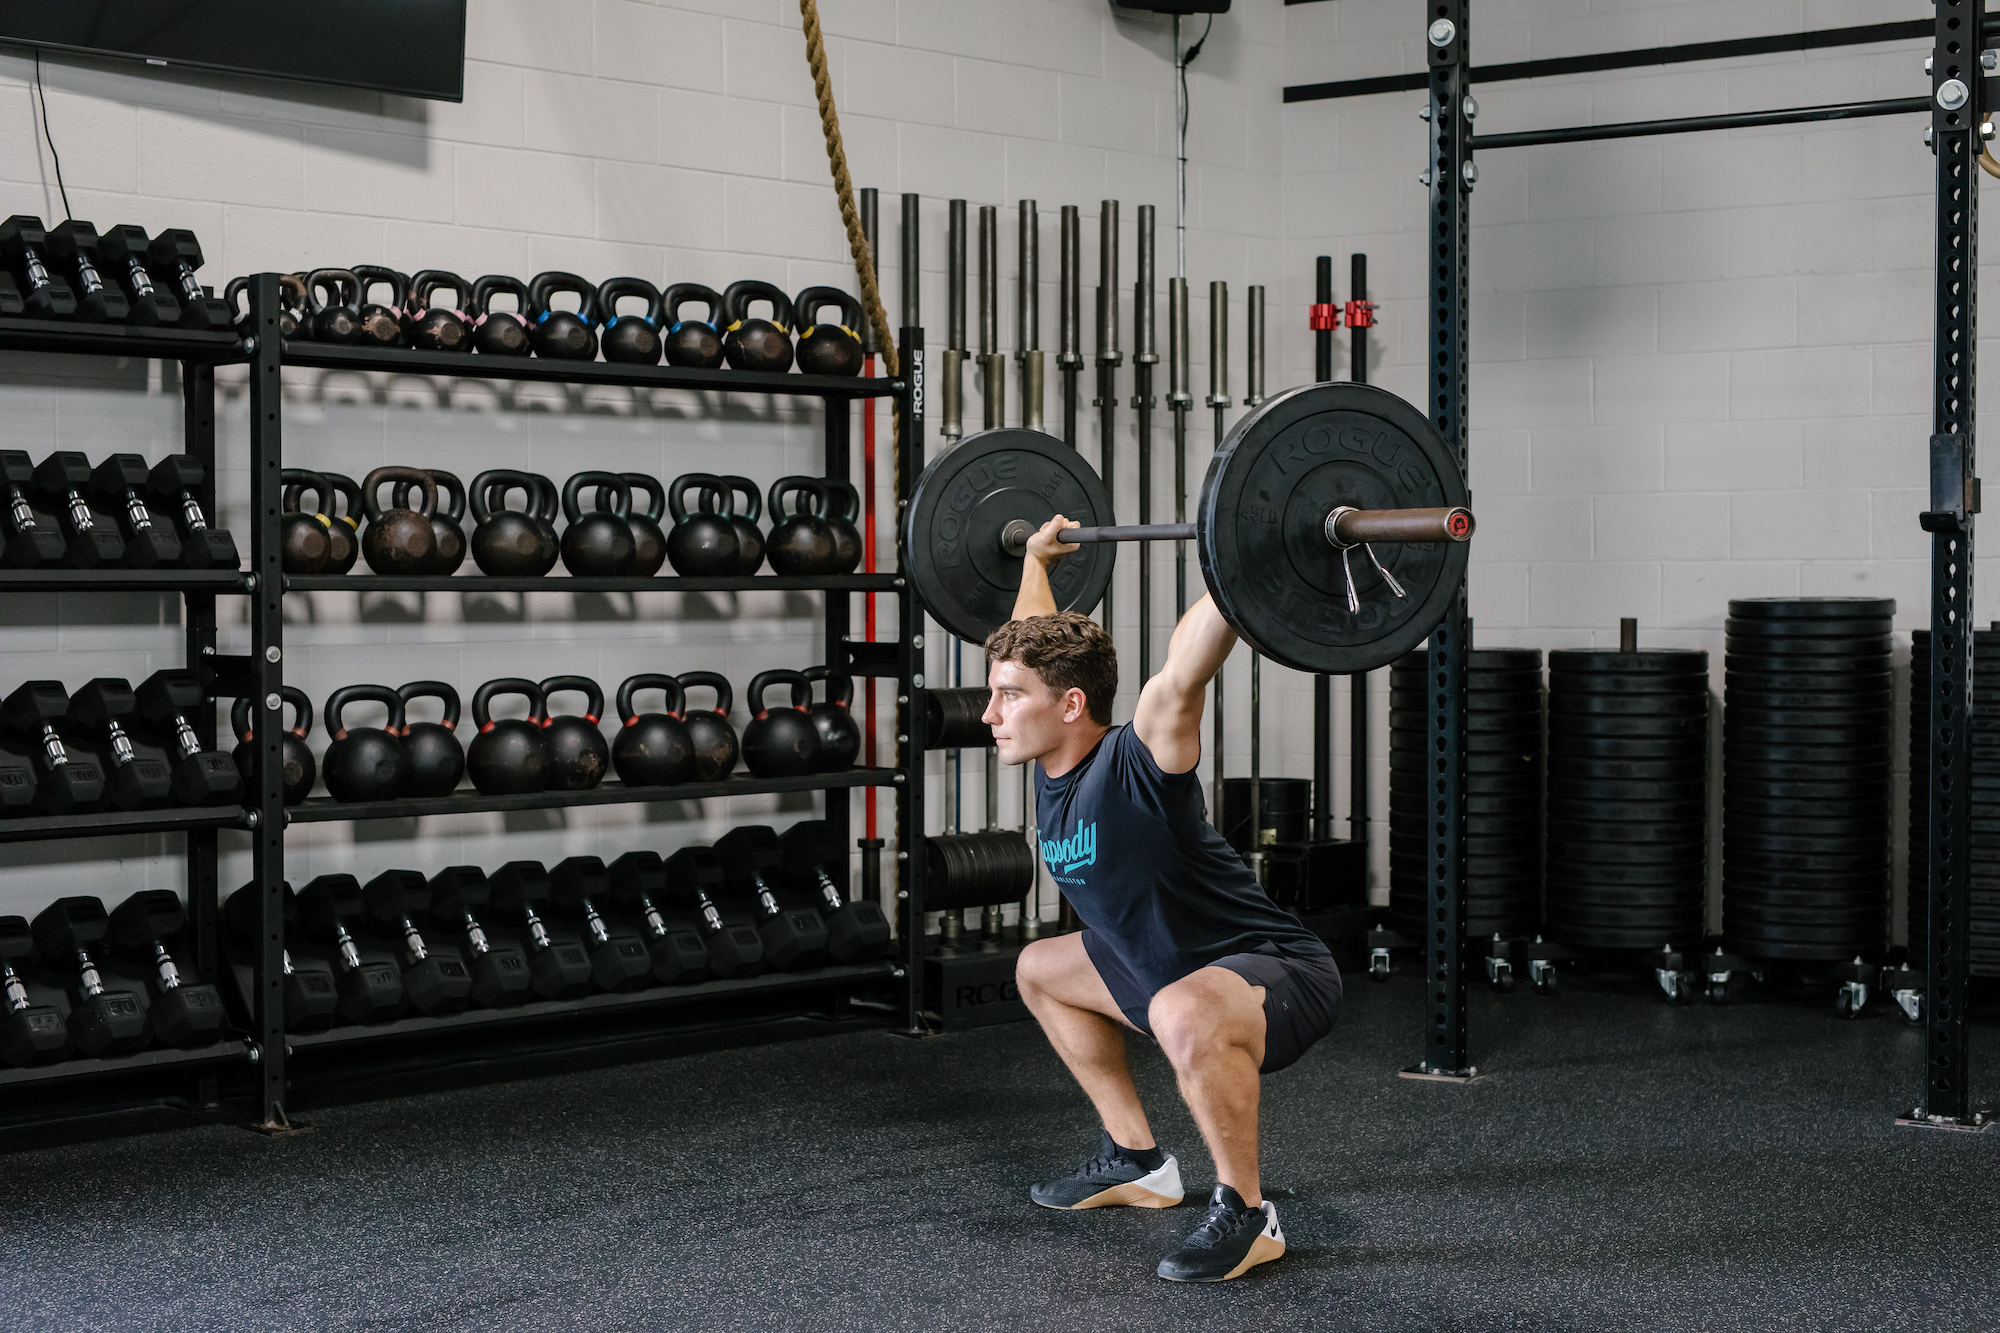 Points of Performance: The Overhead Squat